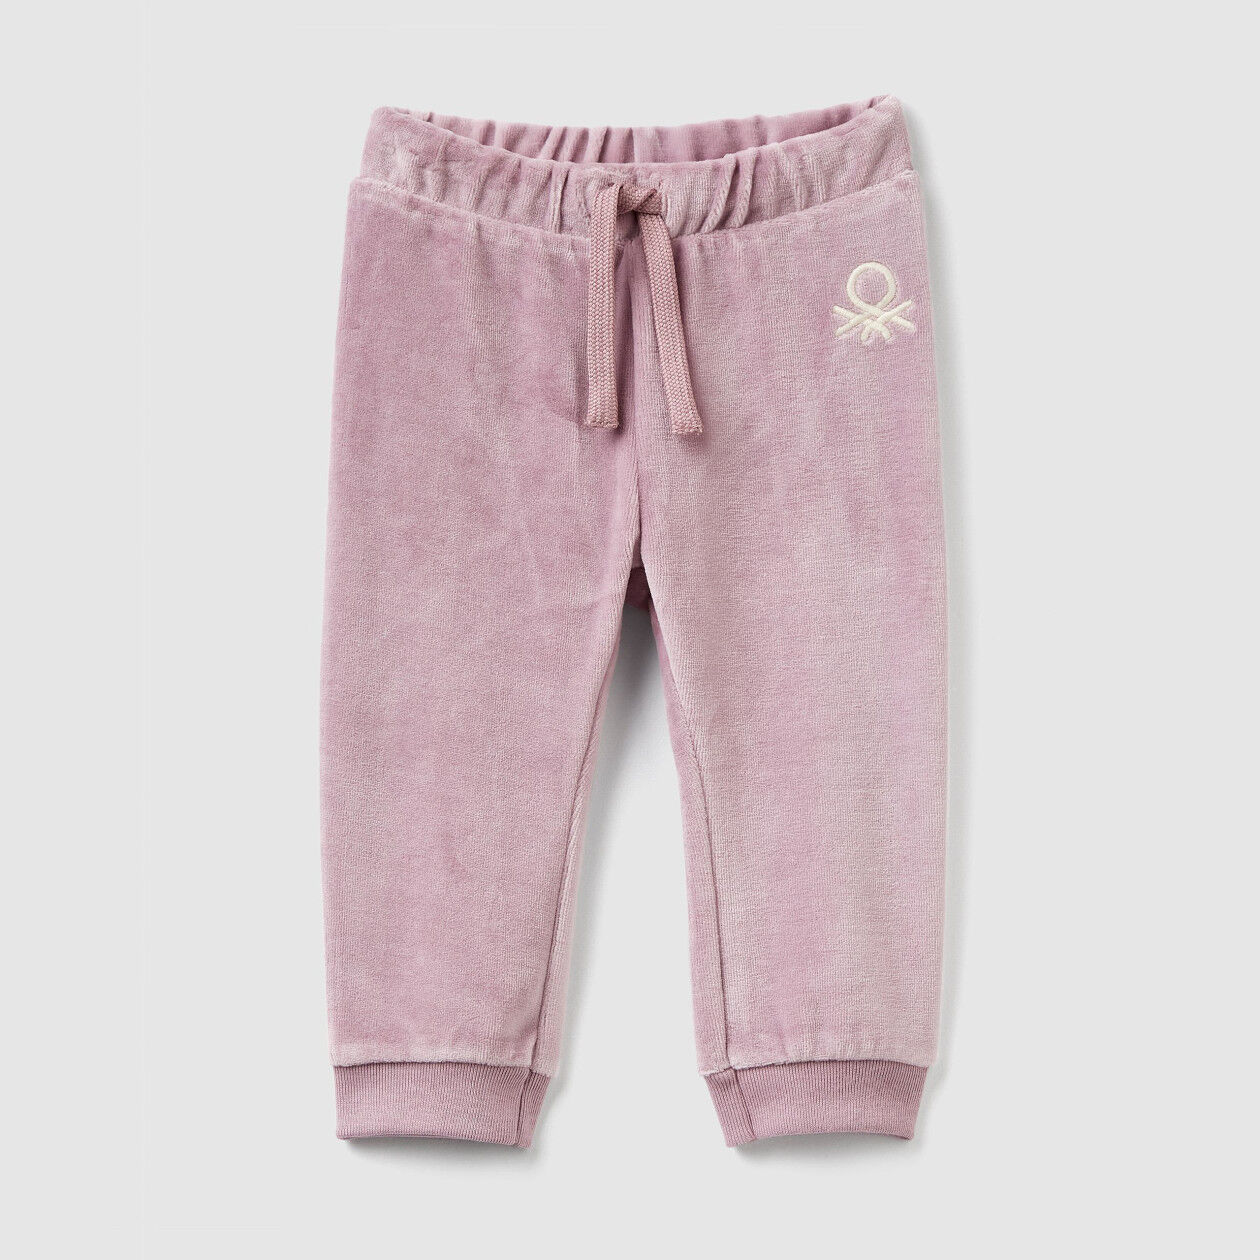 Chenille trousers with drawstring